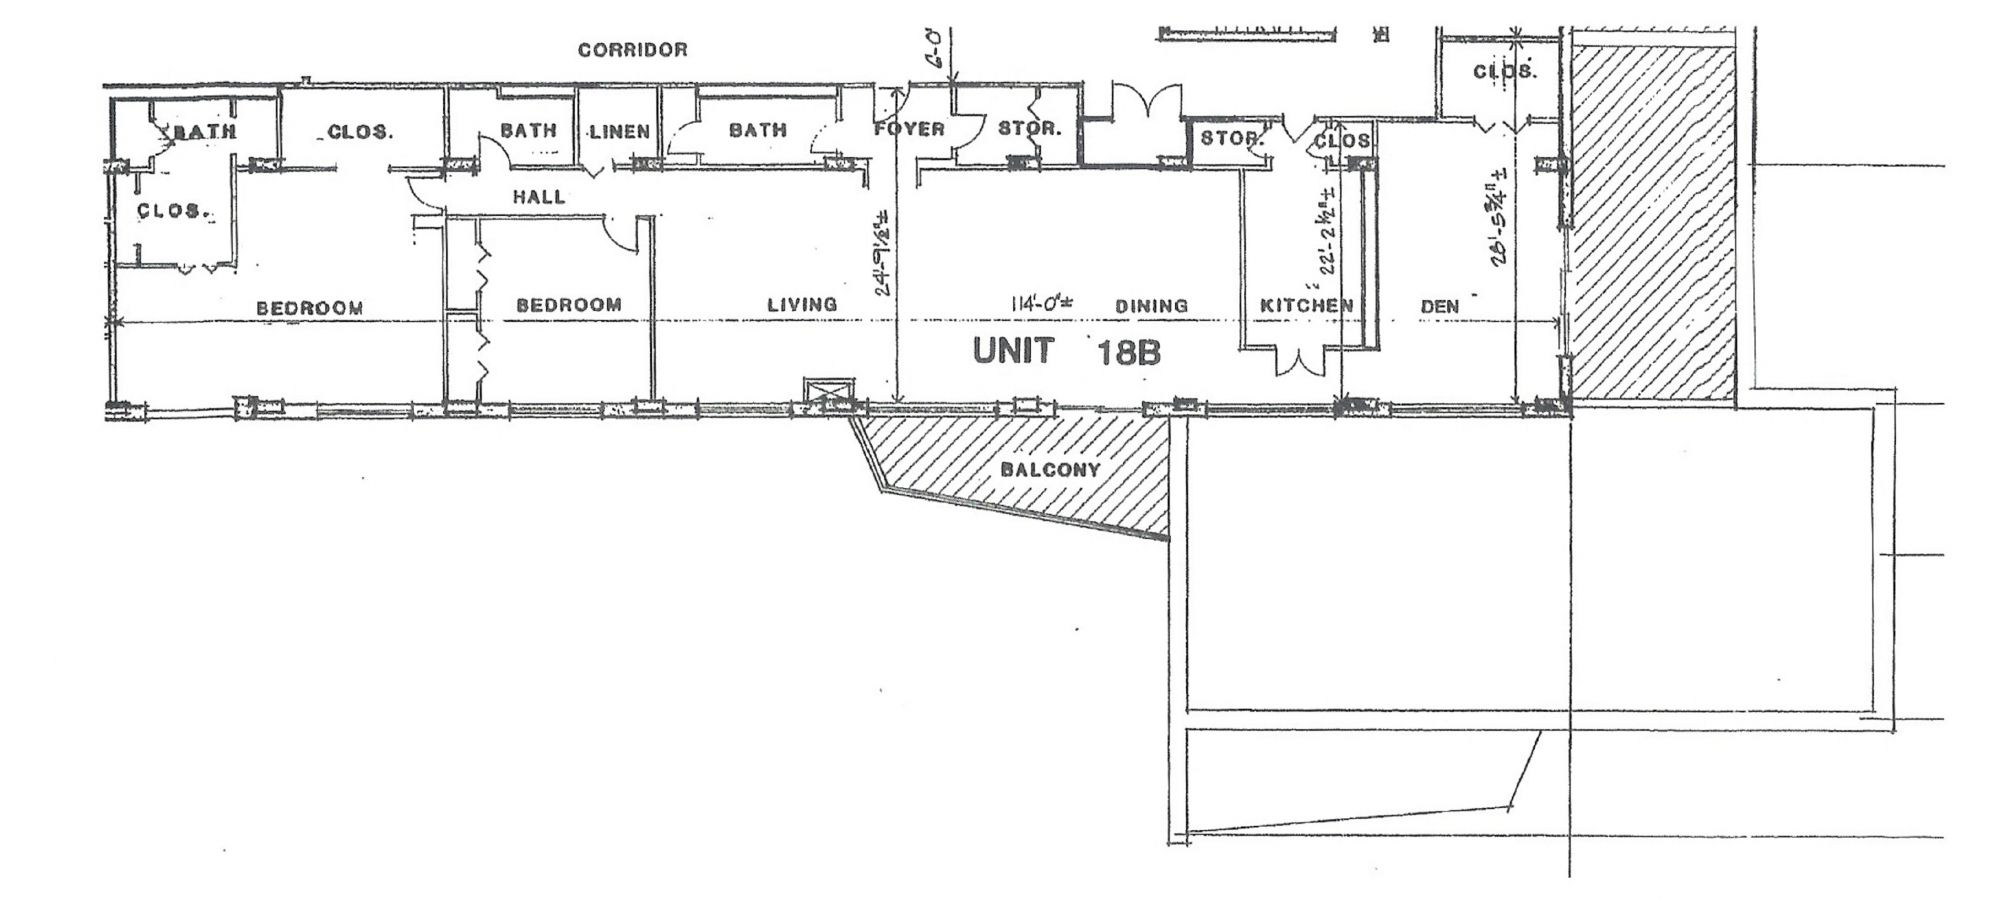 Penthouse Unit 18b Floor Plan